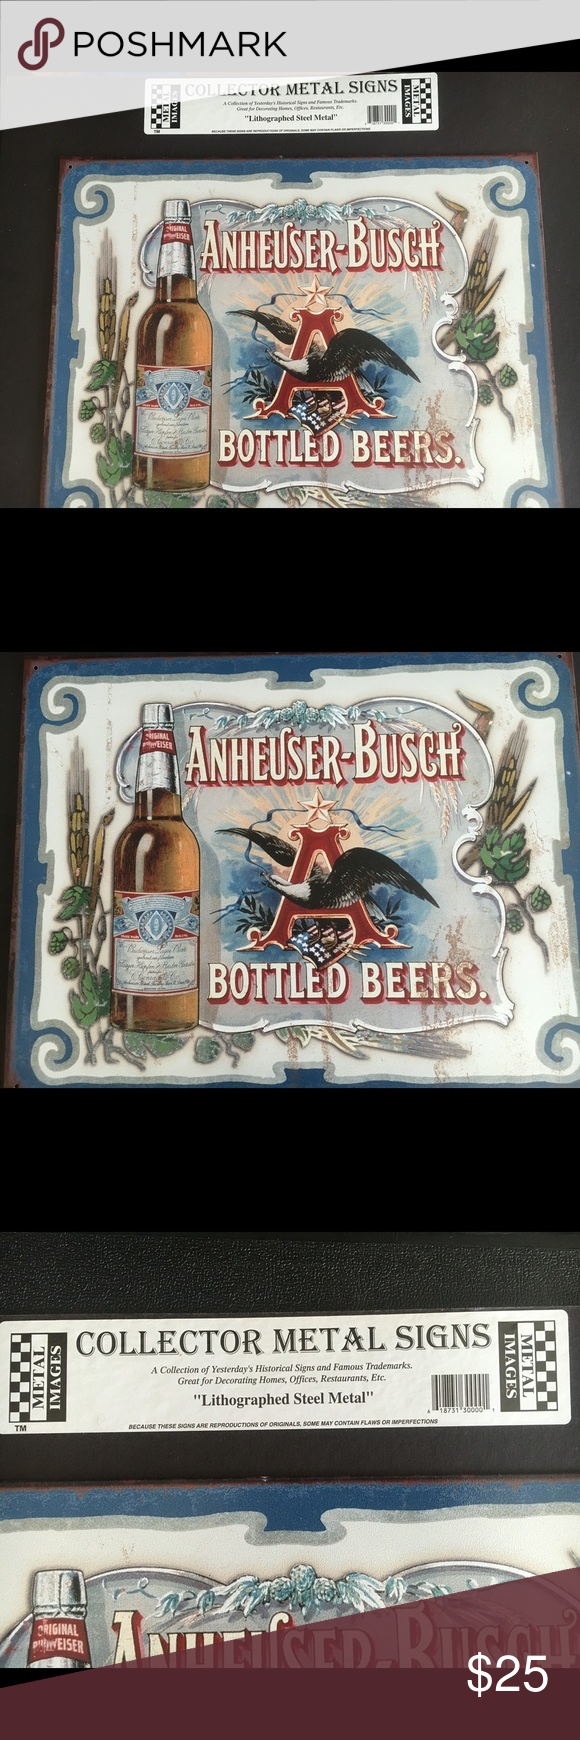 """Budweiser collectible metal sign Collectible Anheuser-Busch Budweiser lithographed metal sign. Has an American eagle in the letter """"A"""" and below has the American flag. Other"""